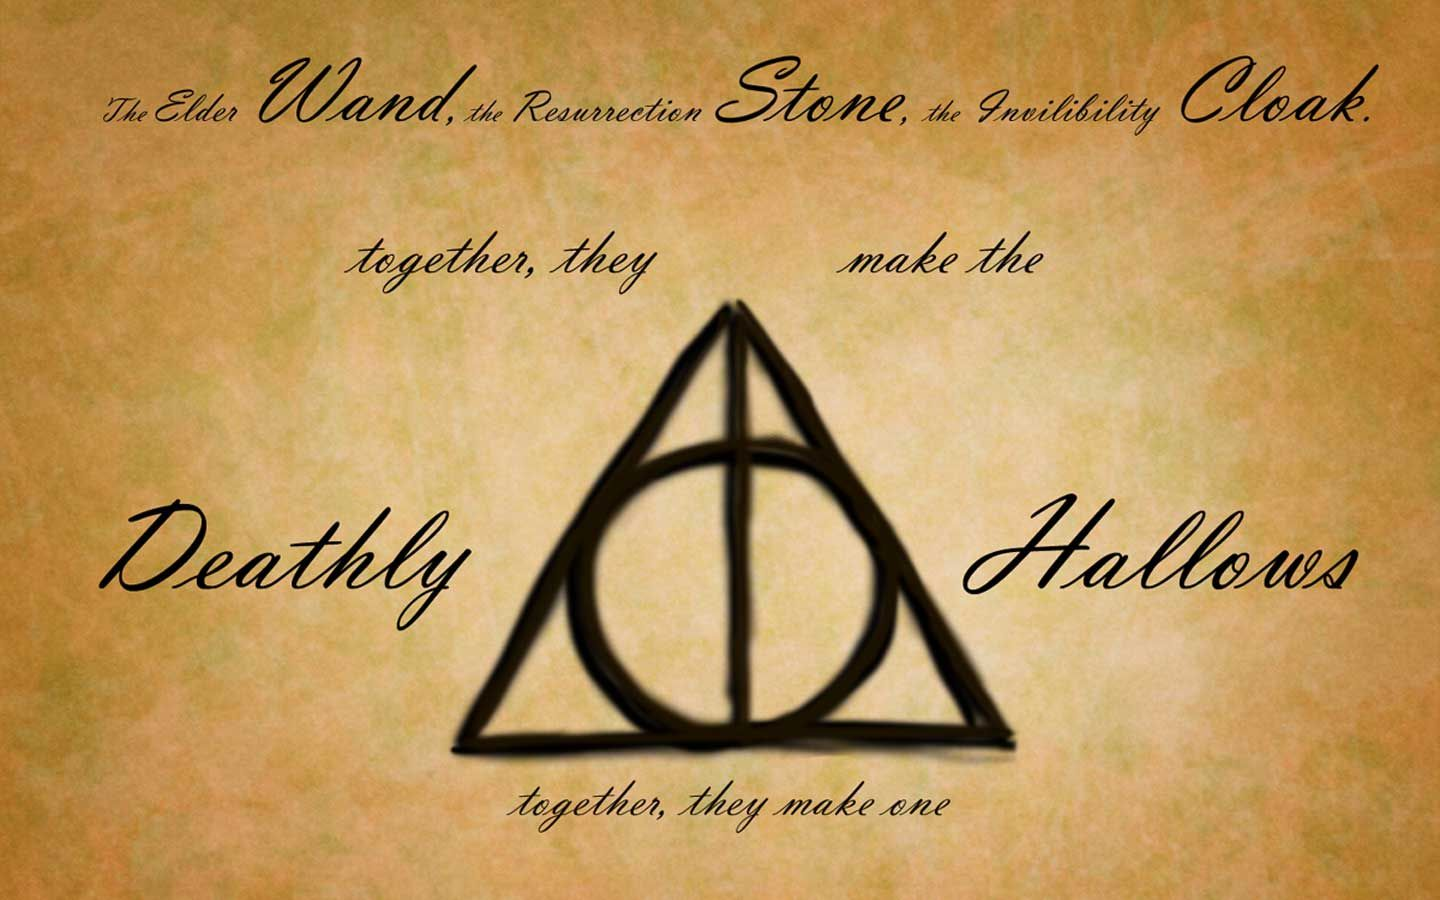 Harry potter symbols google search harry potter inspiration deathly hallows sign wallpaper by melissa on deviantart deathly hallows wallpapers wallpapers biocorpaavc Choice Image